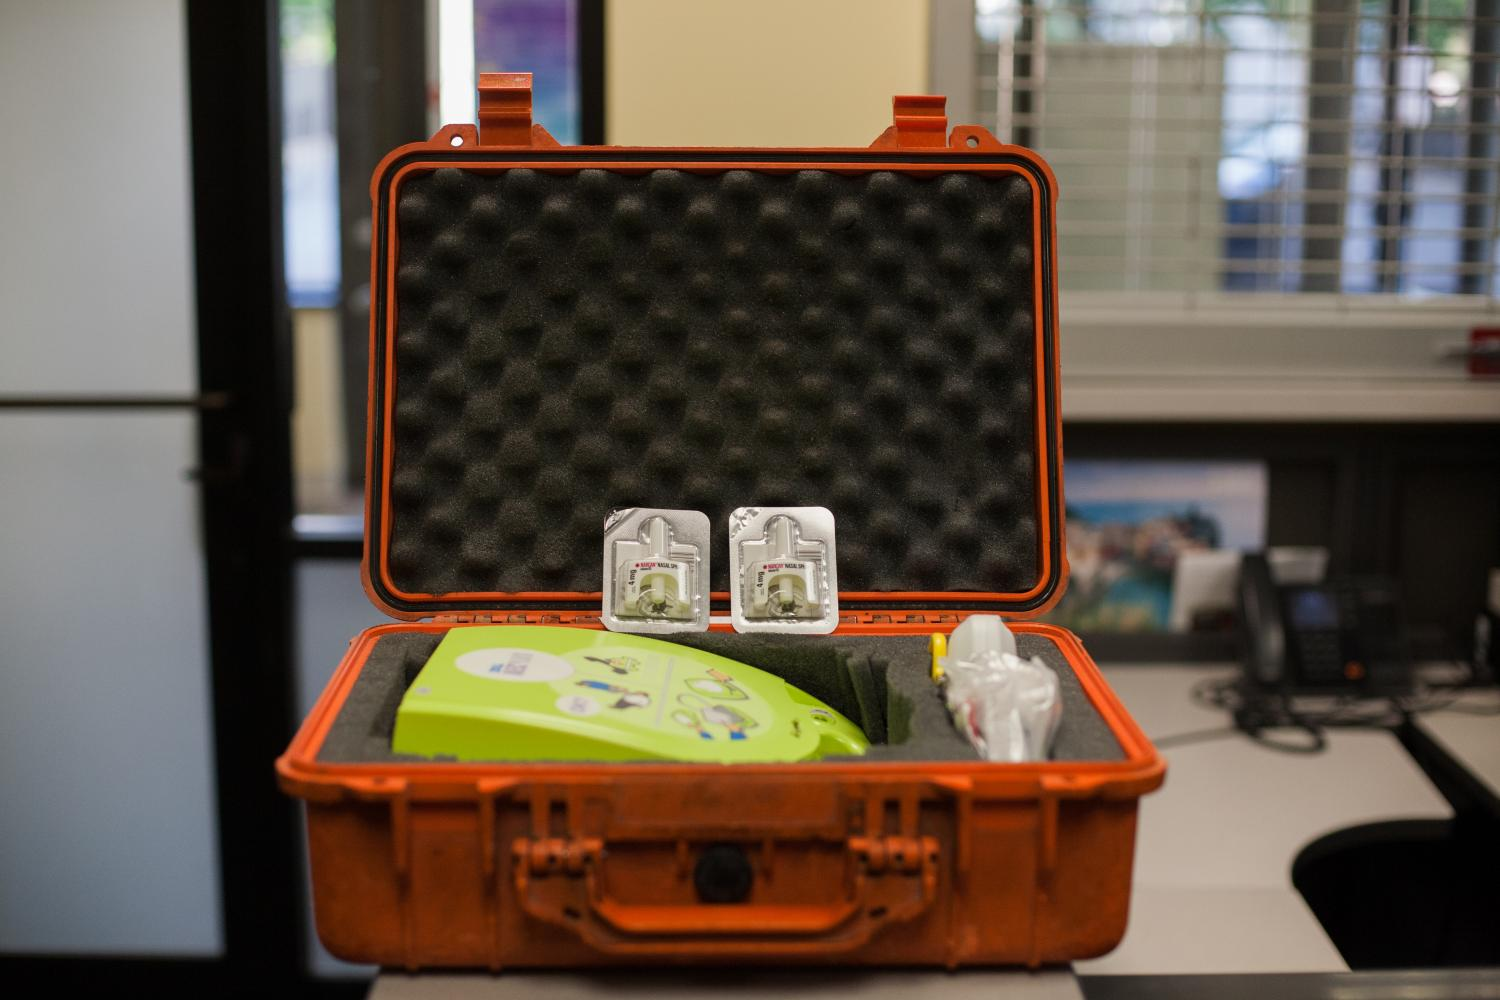 Two+containers+of+Narcan+nasal+spray.+MUPD+keeps+these+in+their+AED+kits.